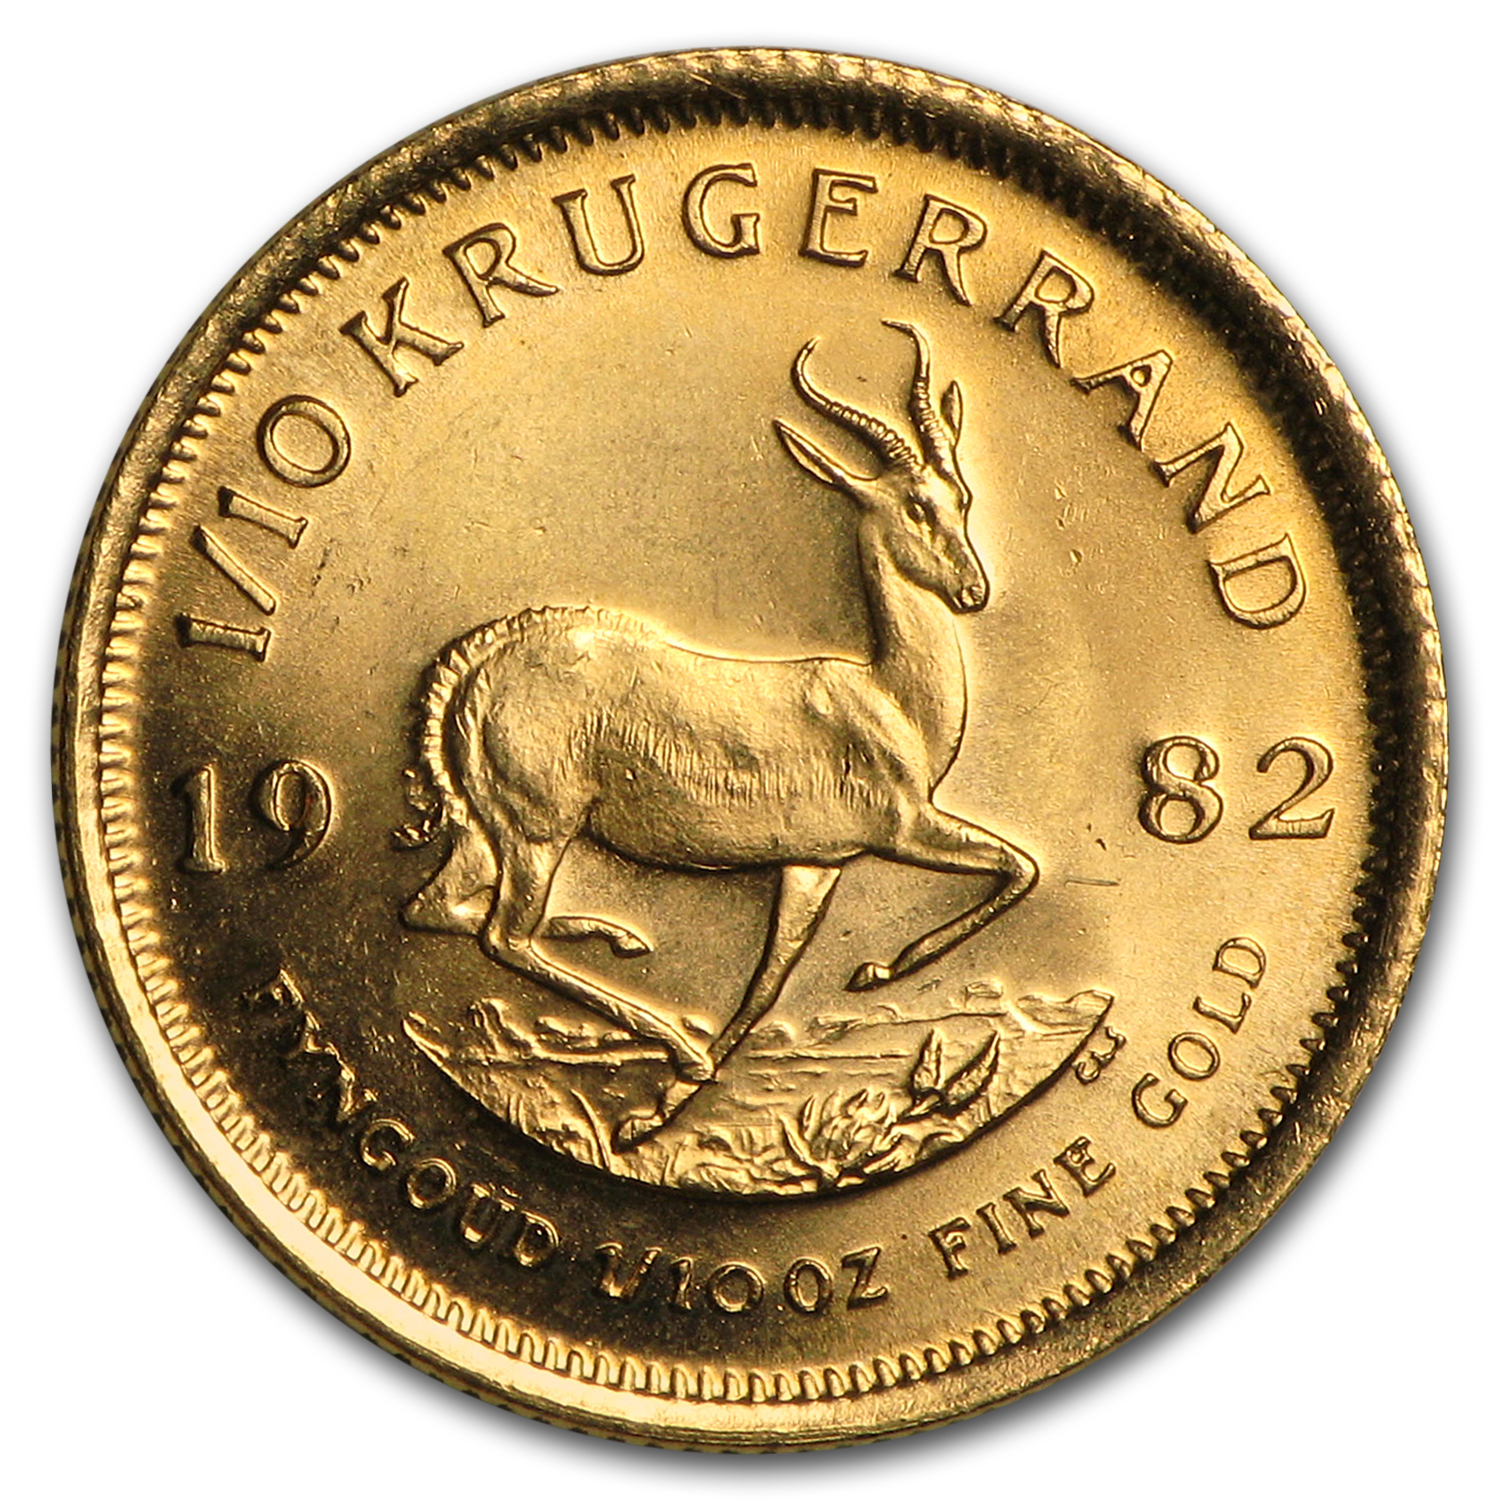 1982 South Africa 1/10 oz Gold Krugerrand BU